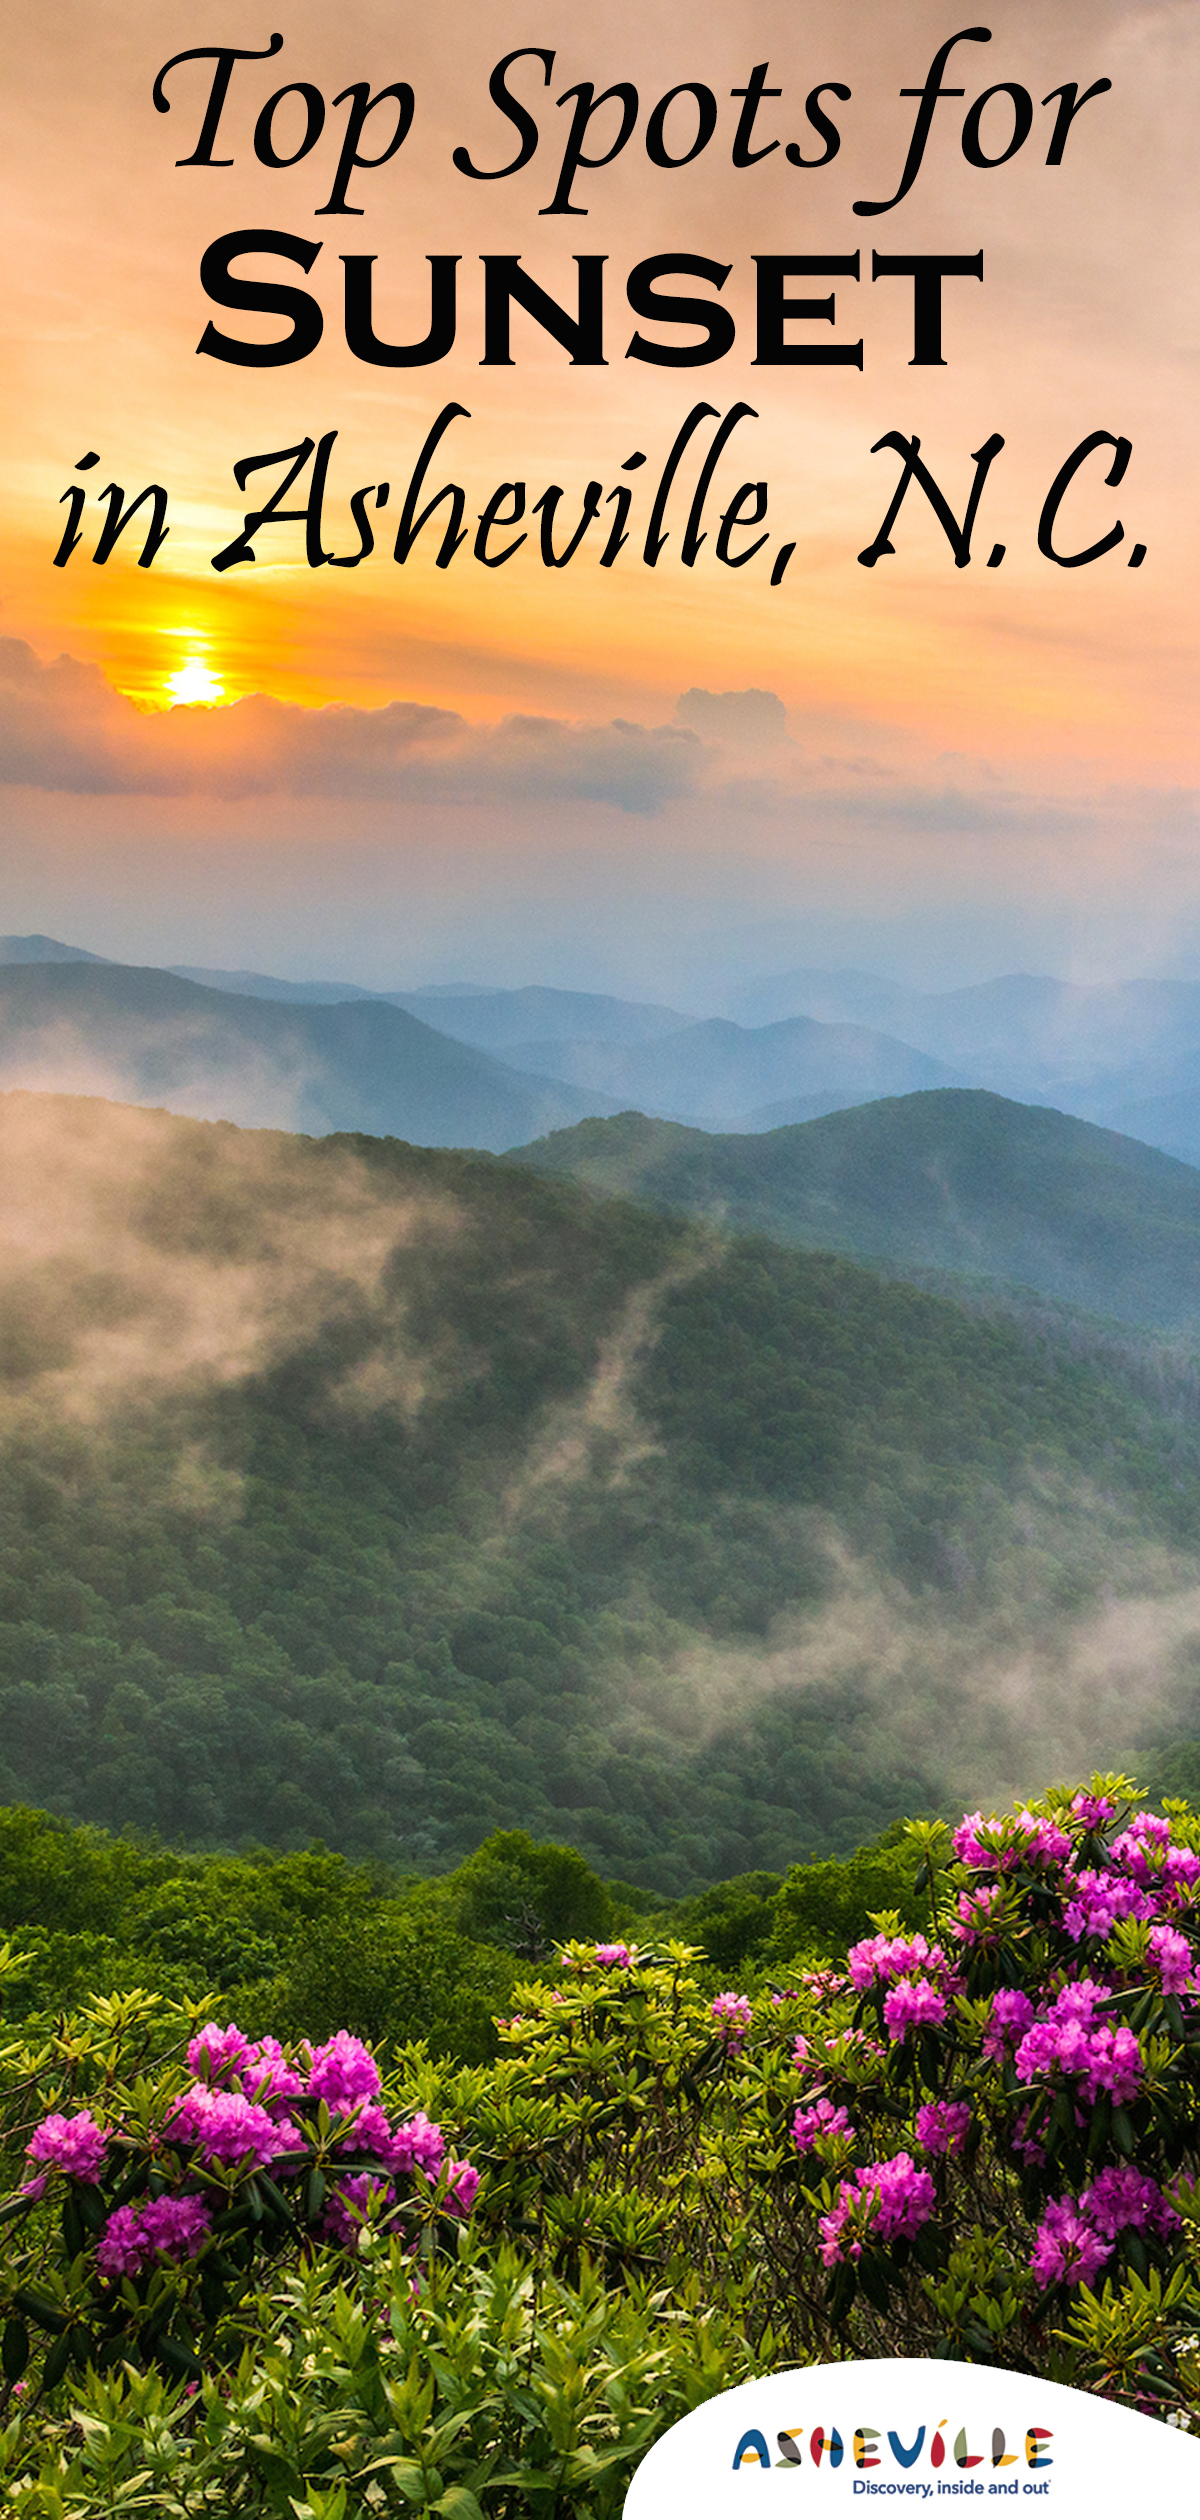 The Top 8 Places to Watch Sunset in Asheville, N.C.